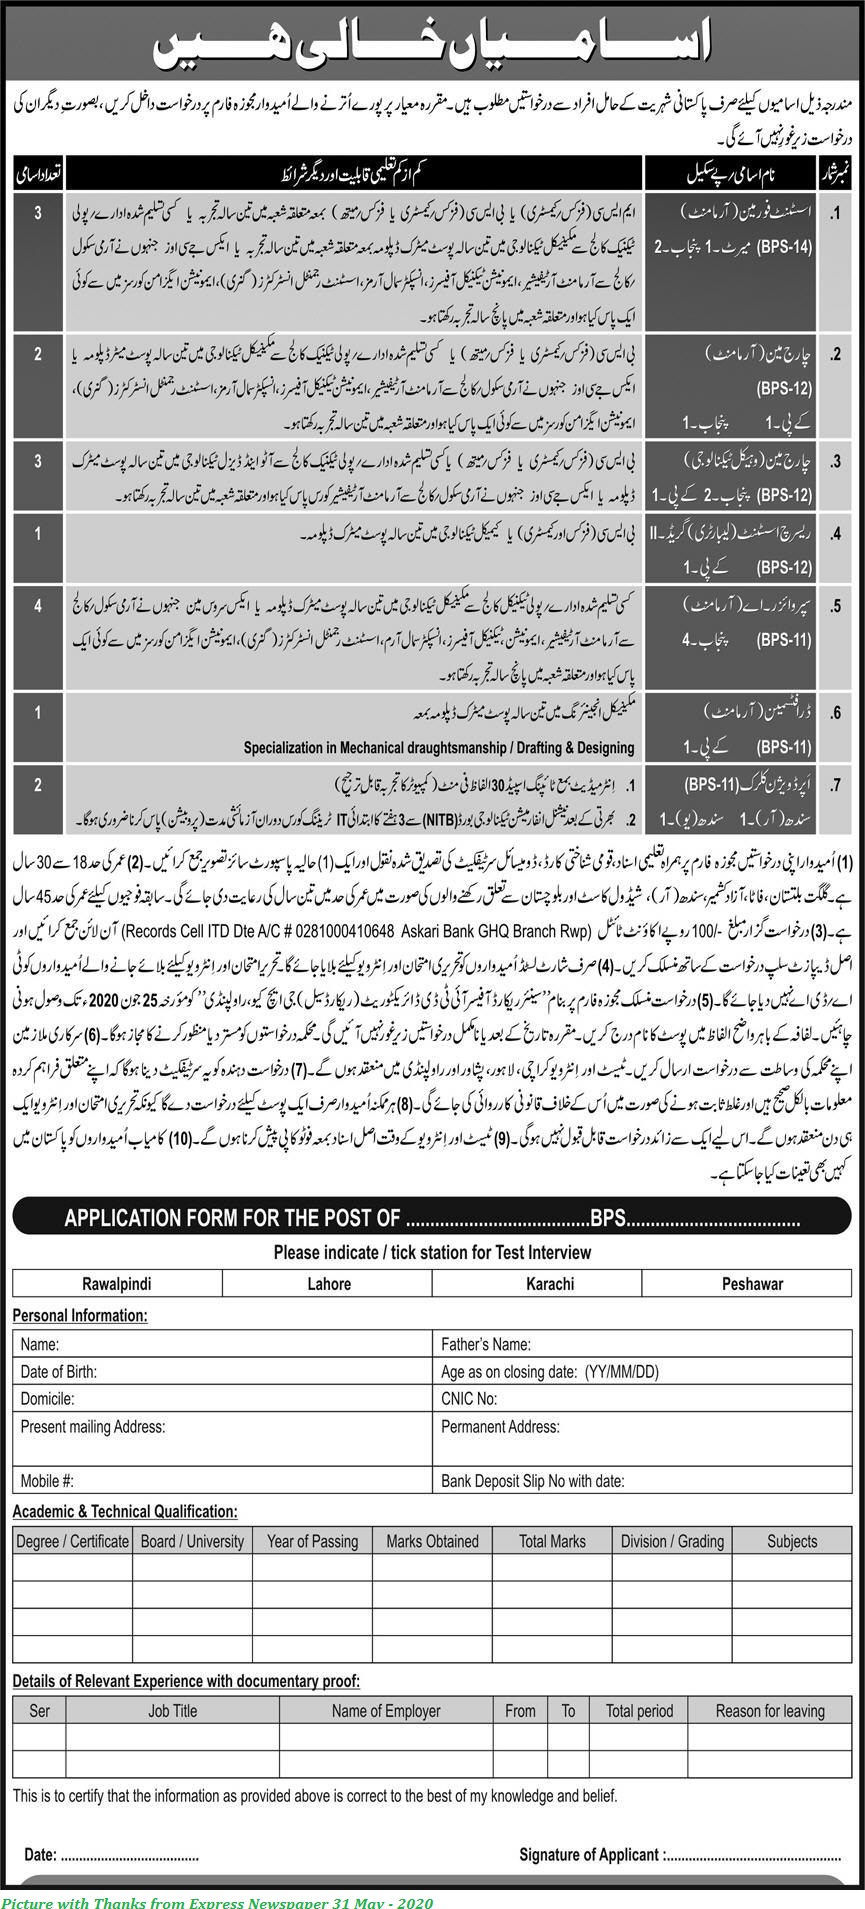 Pakistan Army GHQ Rawalpindi Jobs 2020 - Latest Join Pakistan Army as Civilian GHQ Rawalpindi